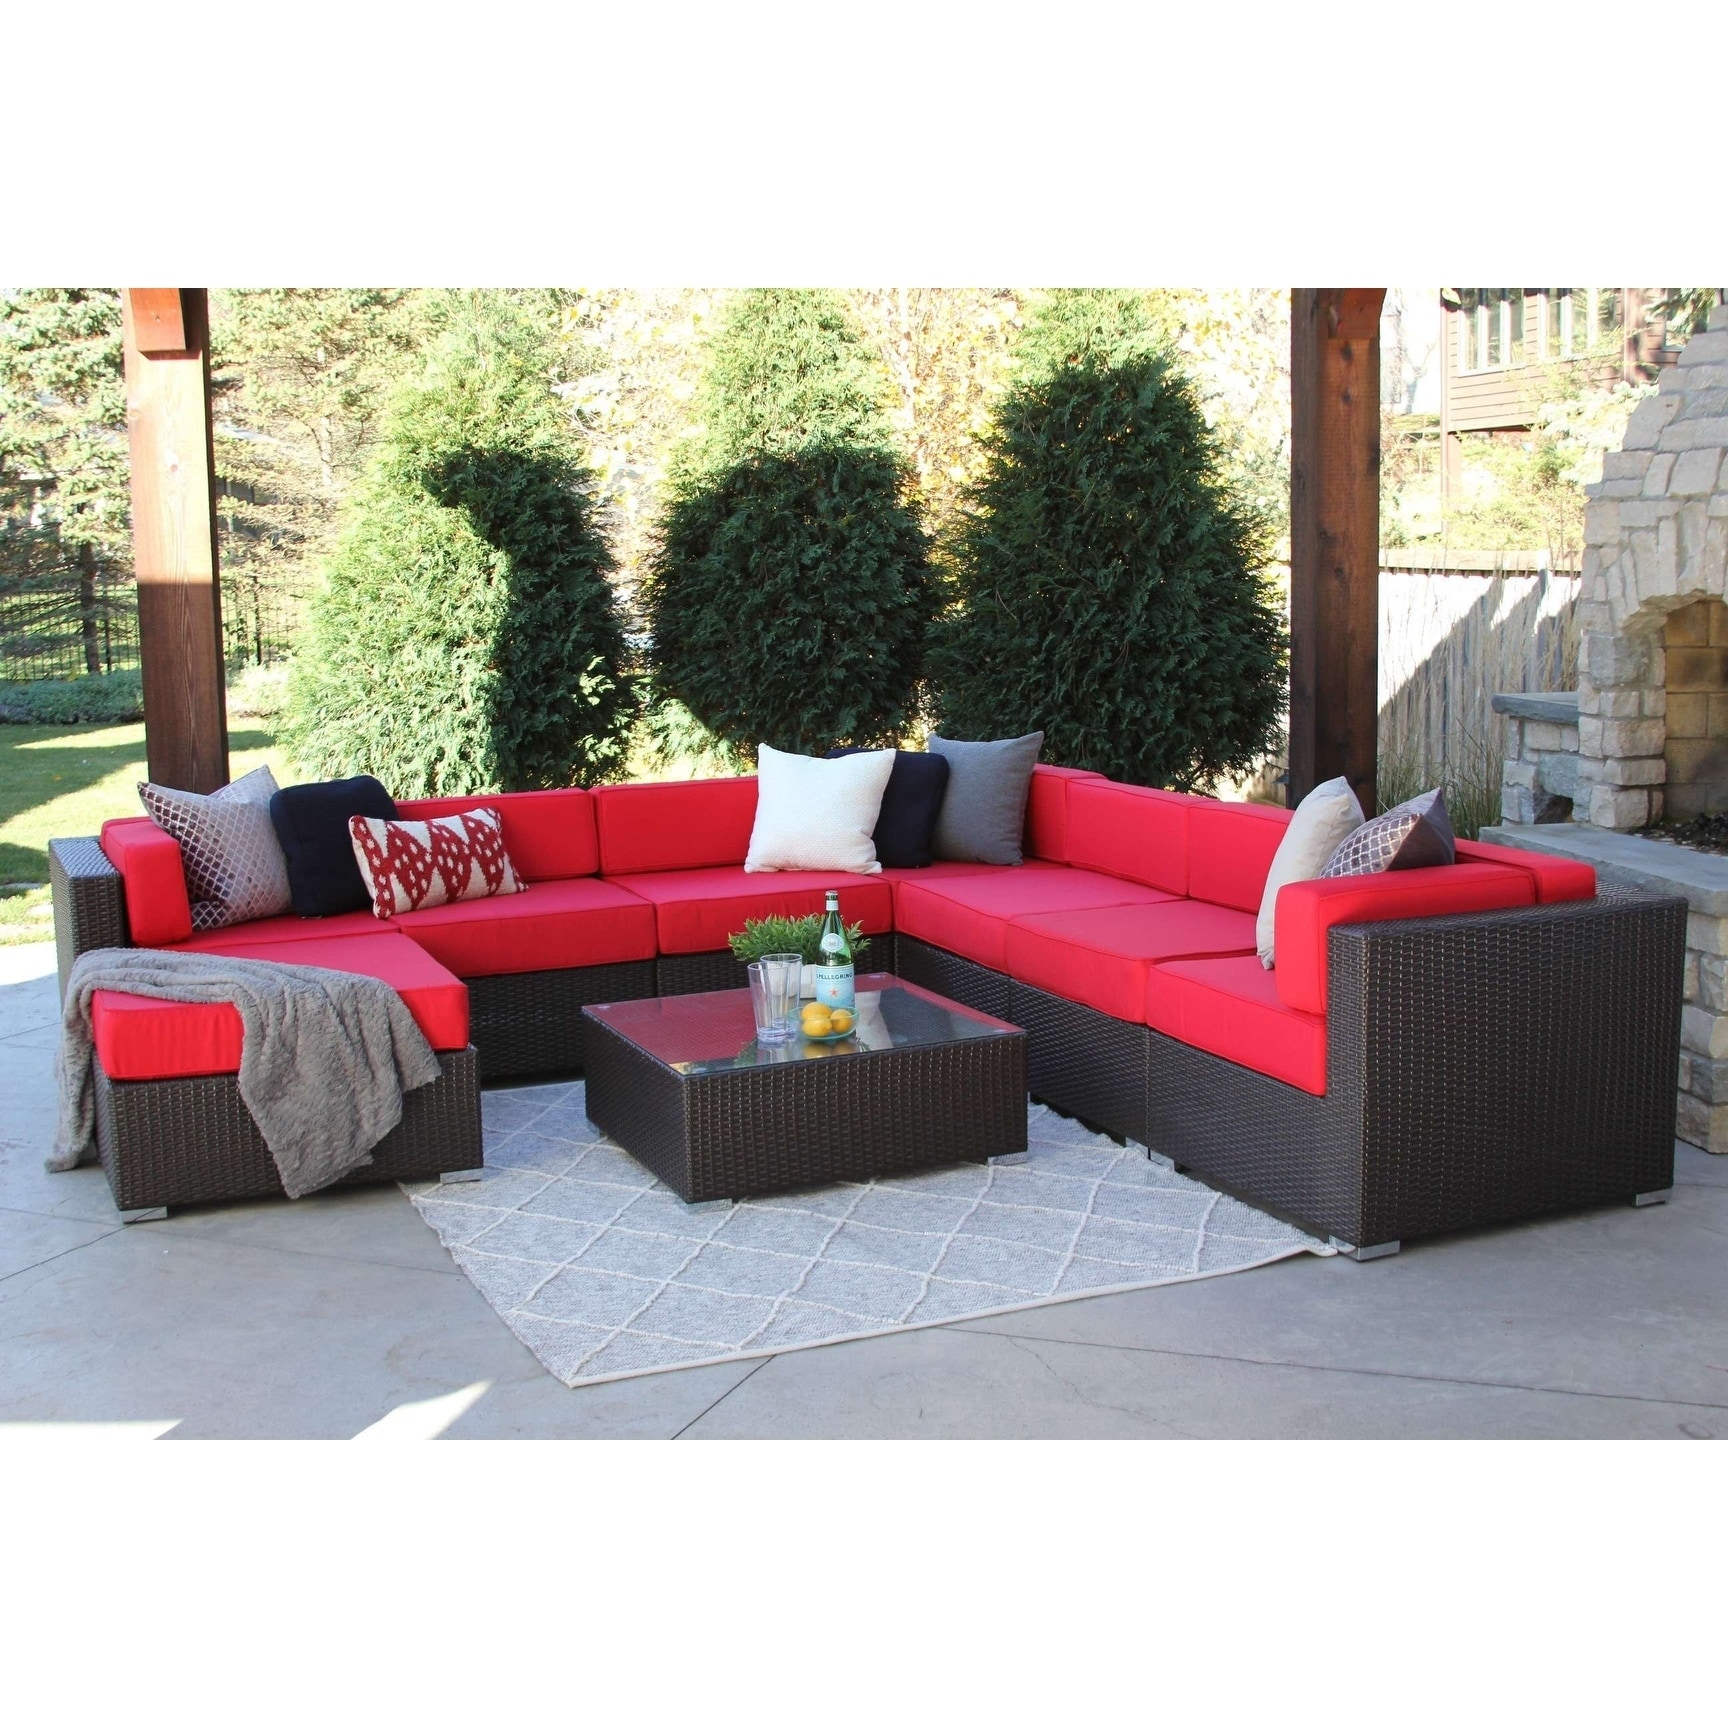 Red Outdoor Sofas Chairs Sectionals For Less Overstock